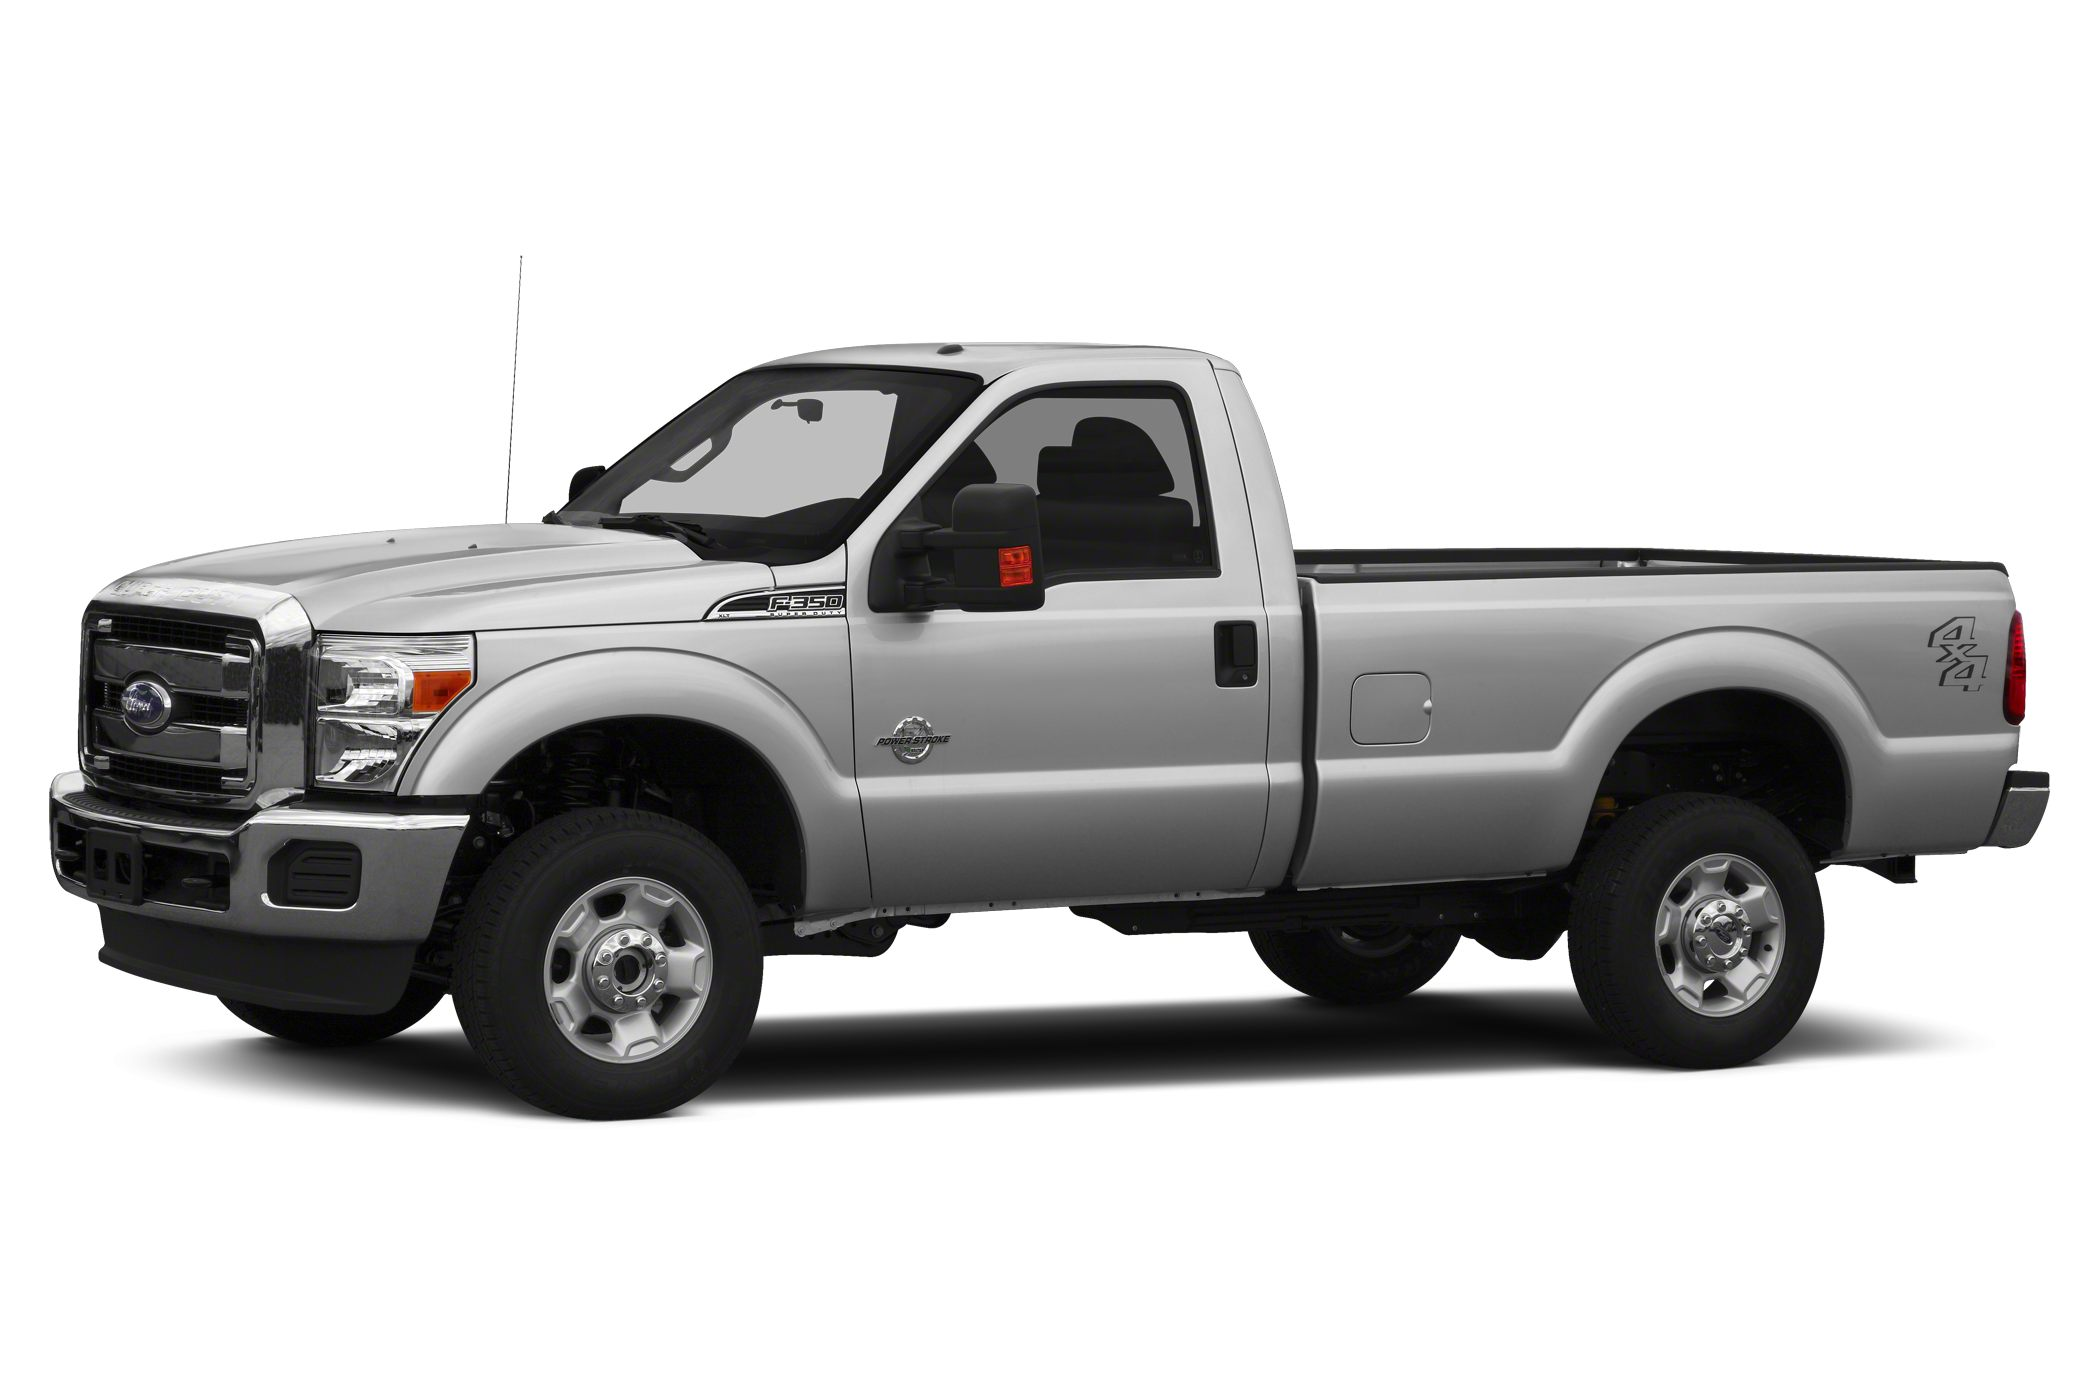 2015 Ford F350 XL Crew Cab Pickup for sale in Manassas for $50,235 with 4 miles.